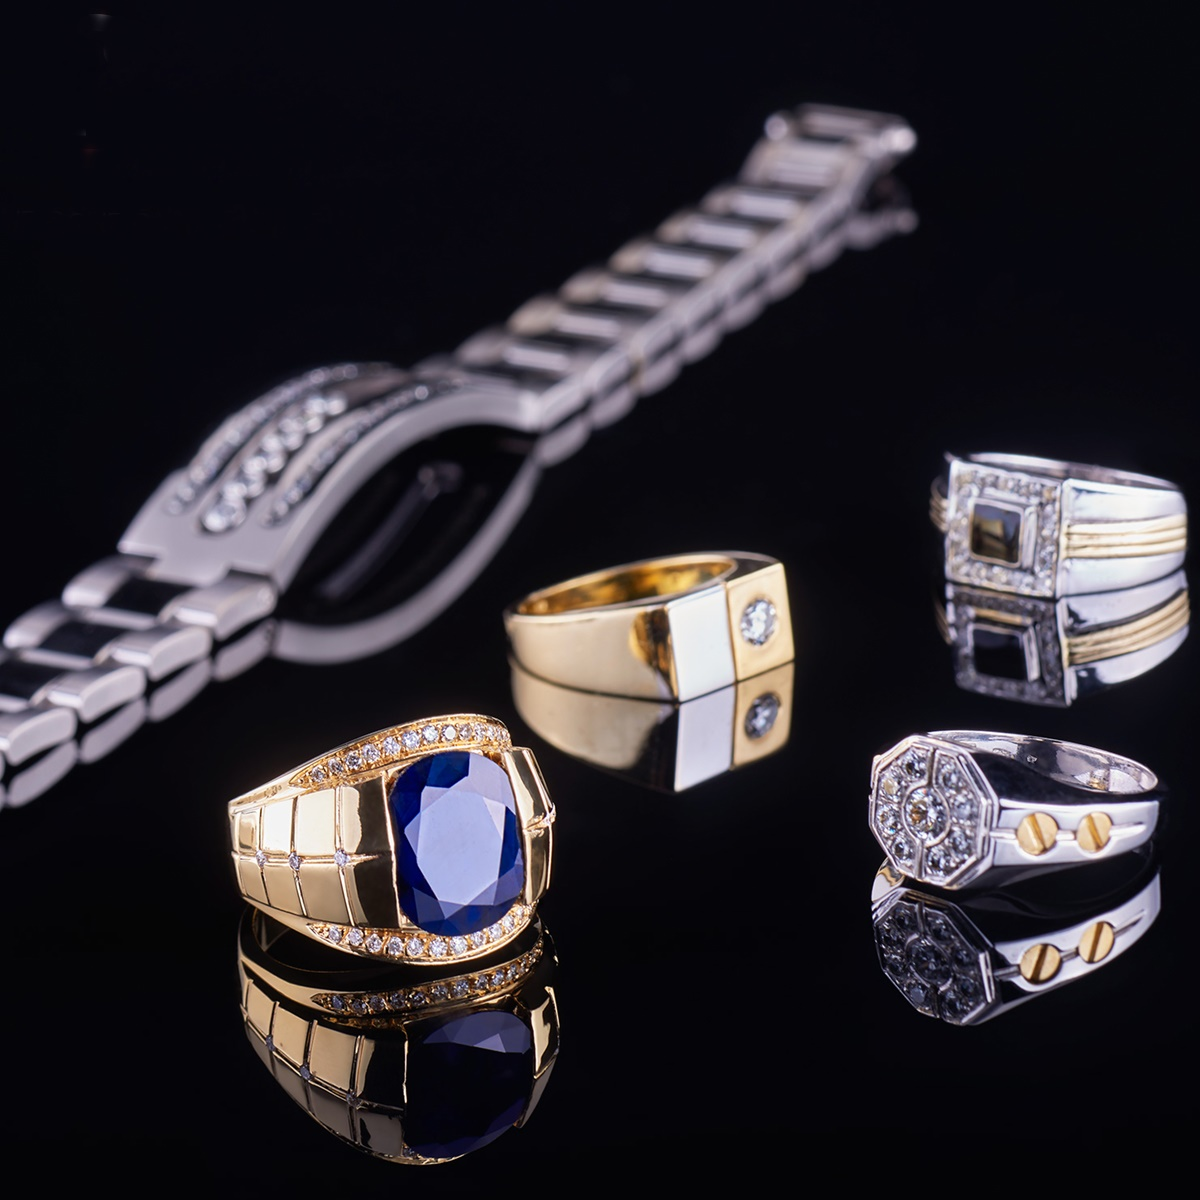 ORIGINAL CHRISTMAS GIFTS FOR MEN. SURPRISE HIM WITH A JEWELRY